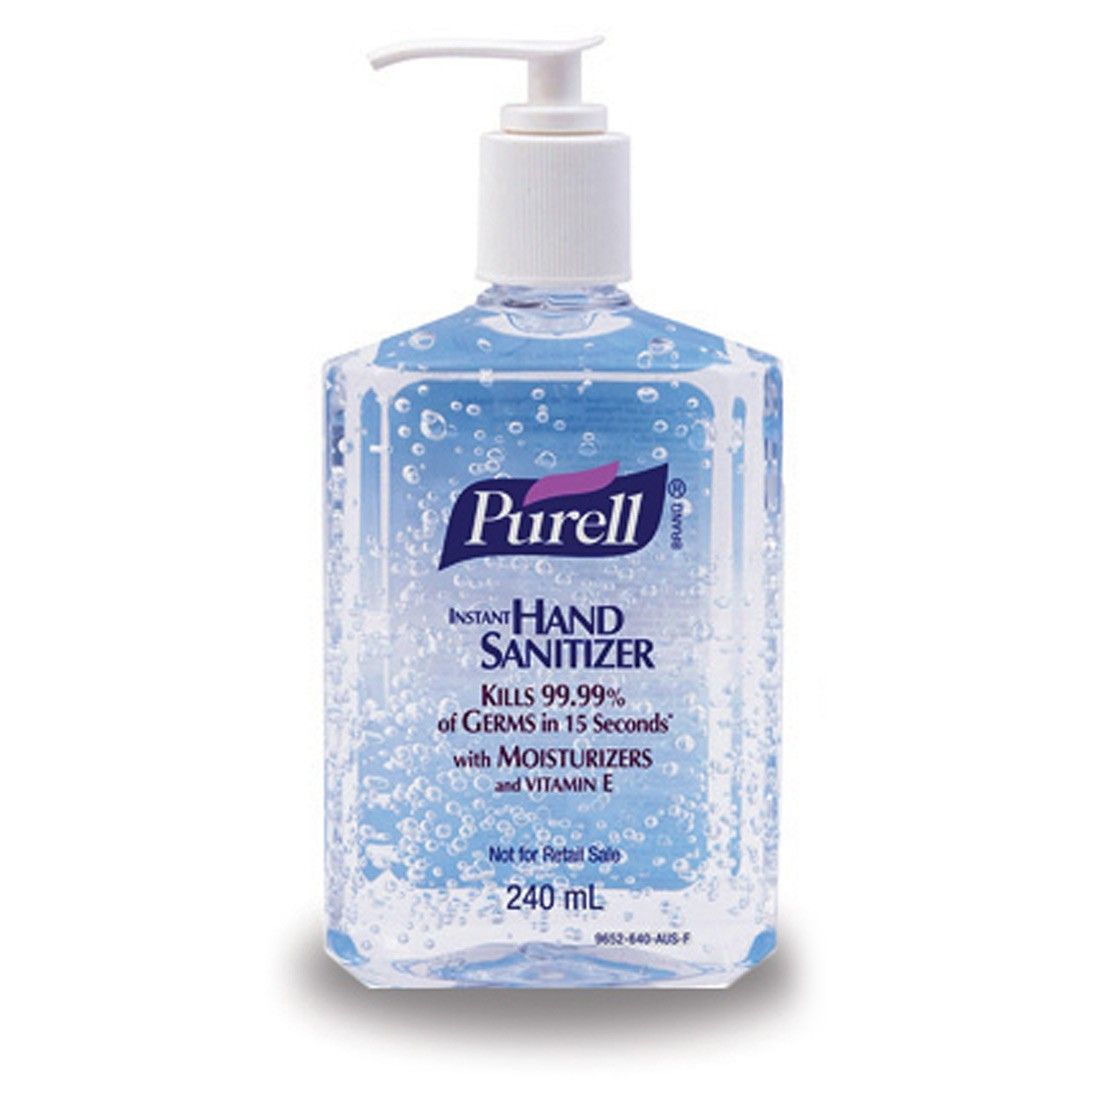 Purell Free Rewards Program Hand Sanitizer Printable Coupons